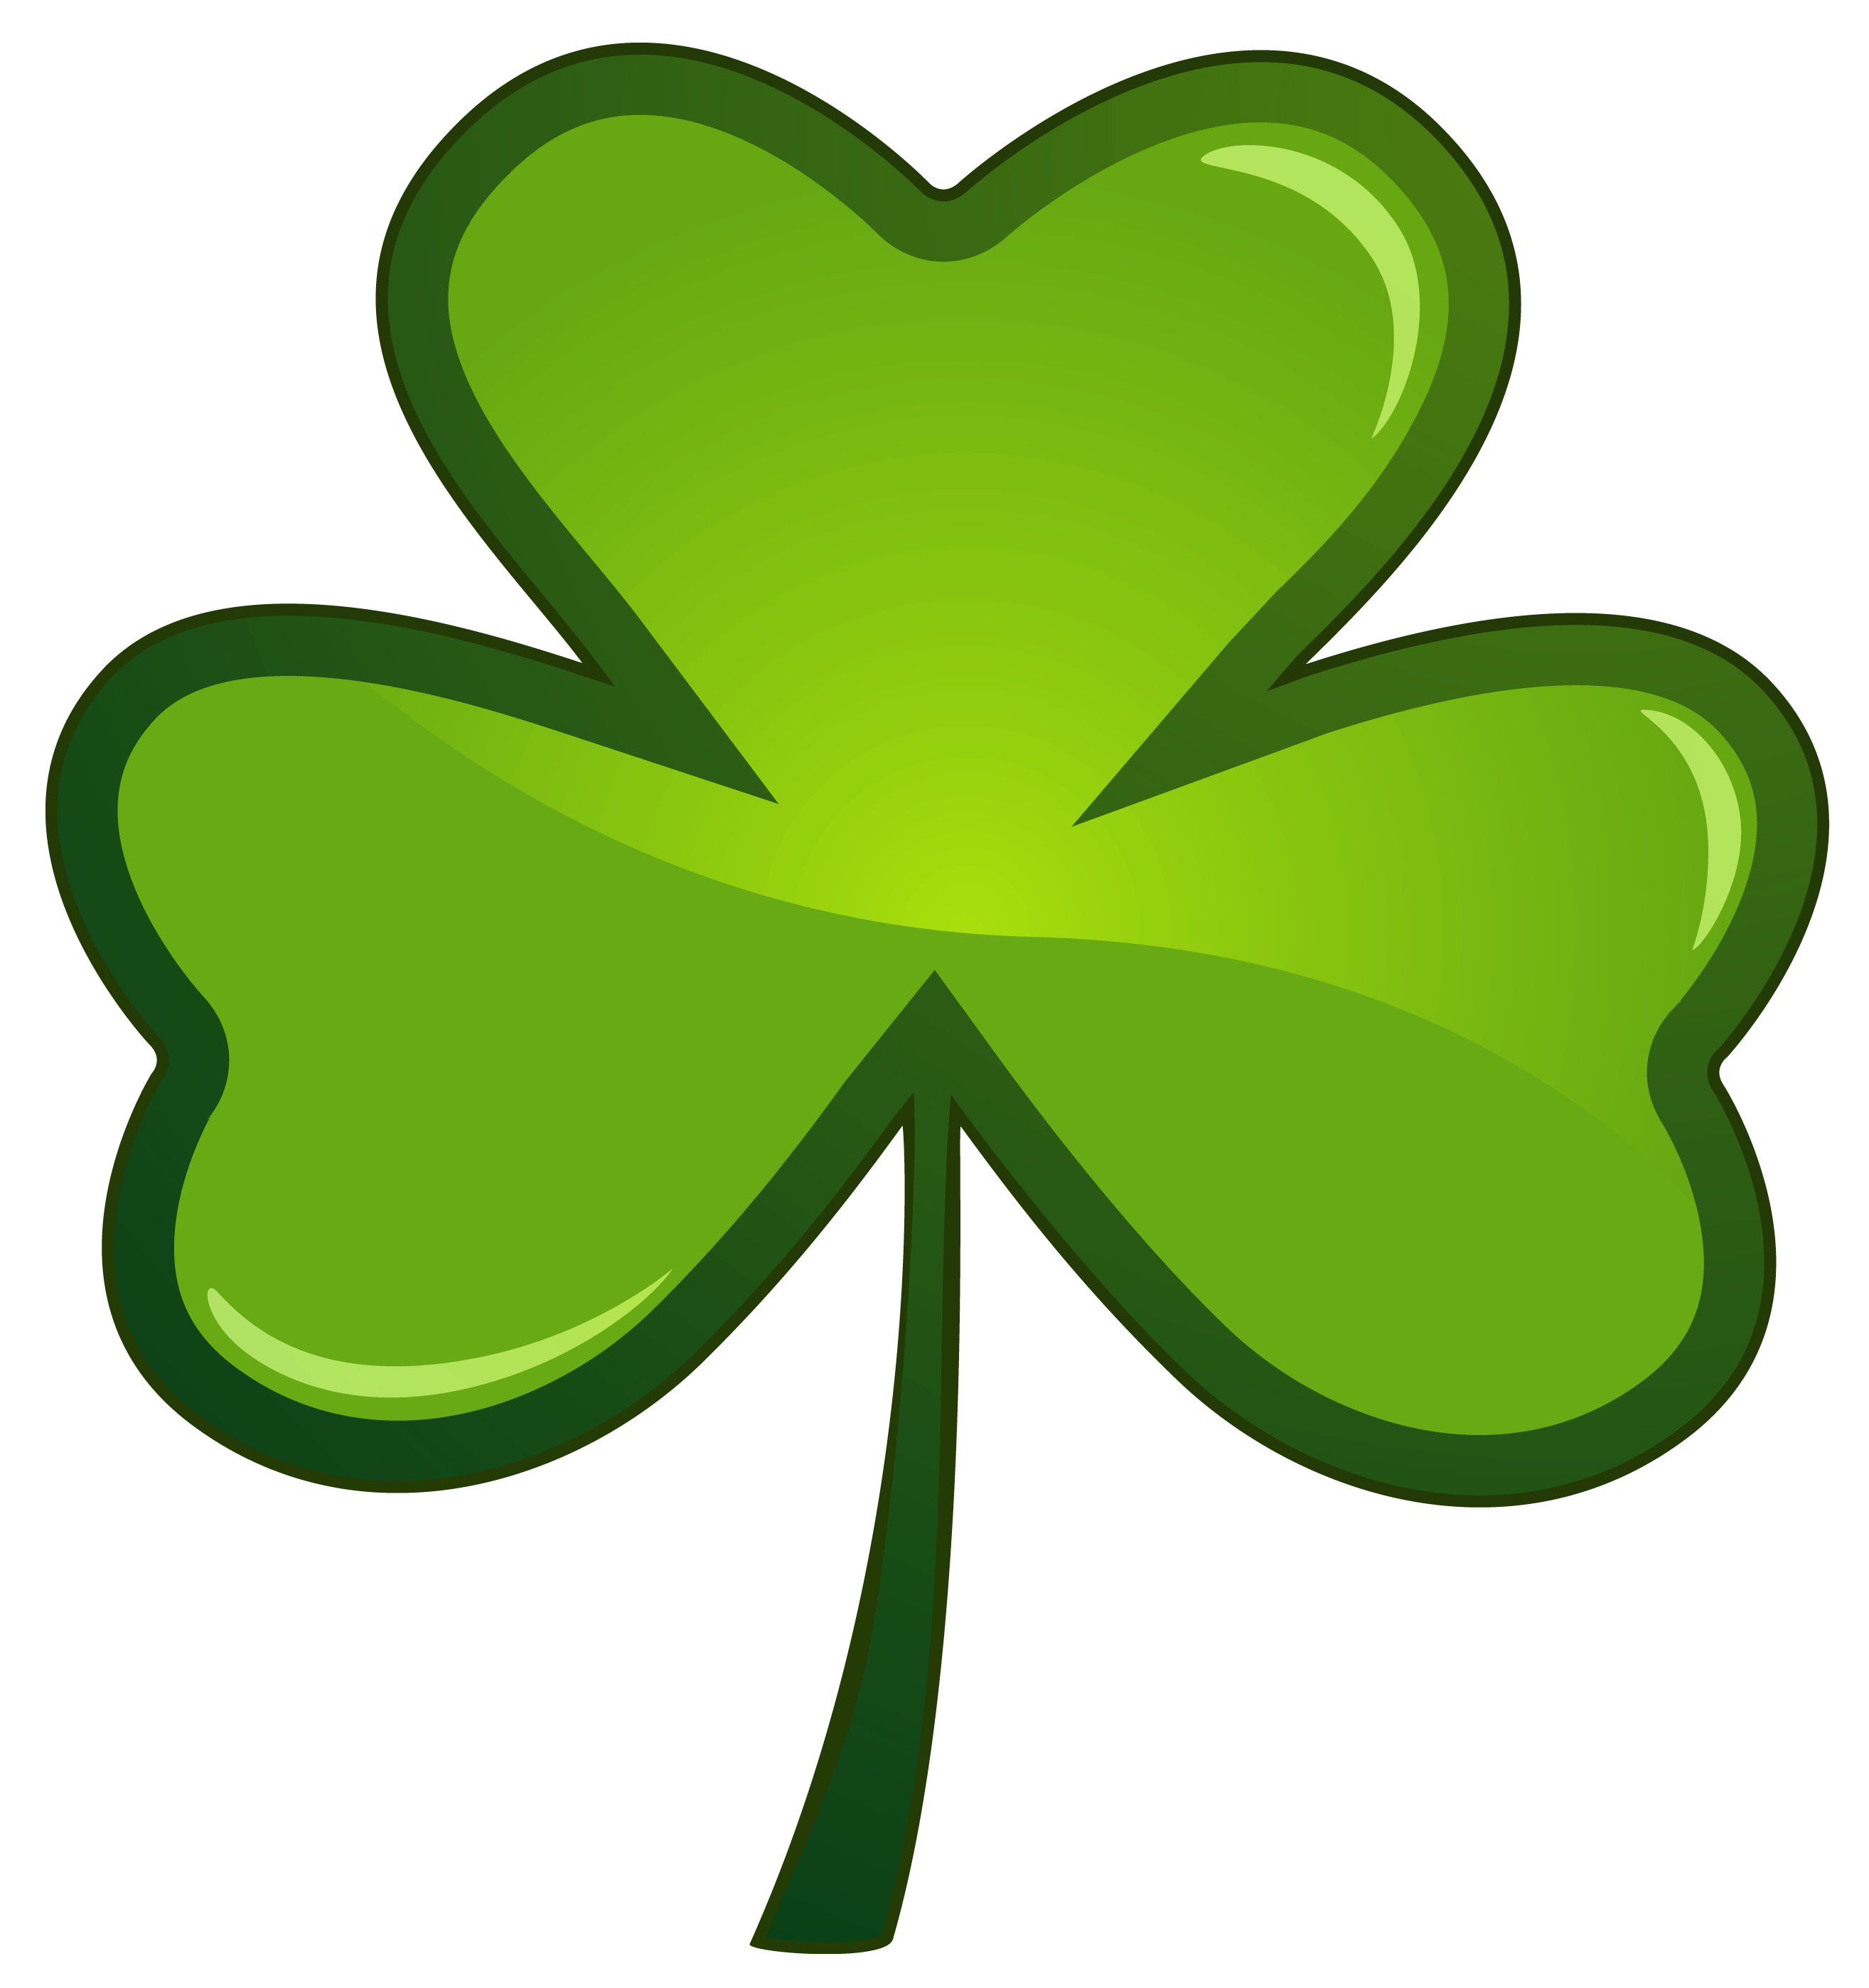 2629x2797 St. Patrick's Day Clipart Black And White St. Patrick's Day 2016